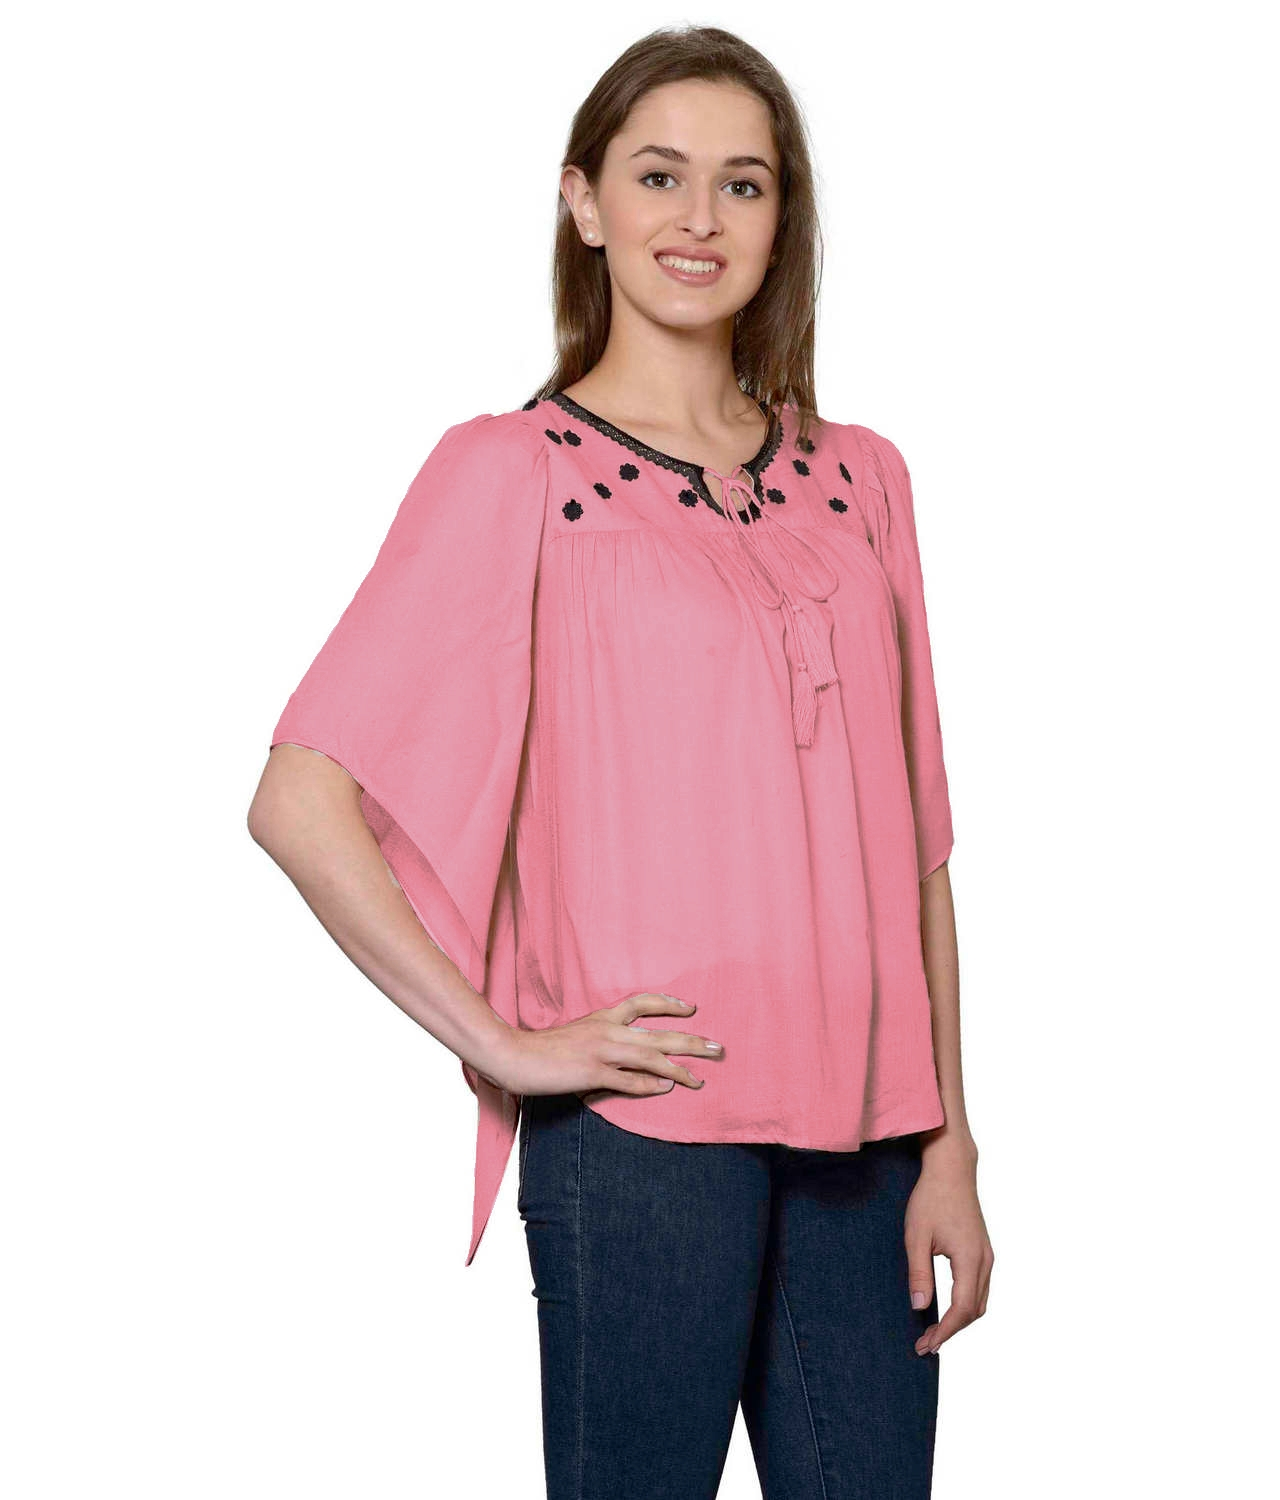 Butterfly Sleeve Empire Top in Vinyl Pink